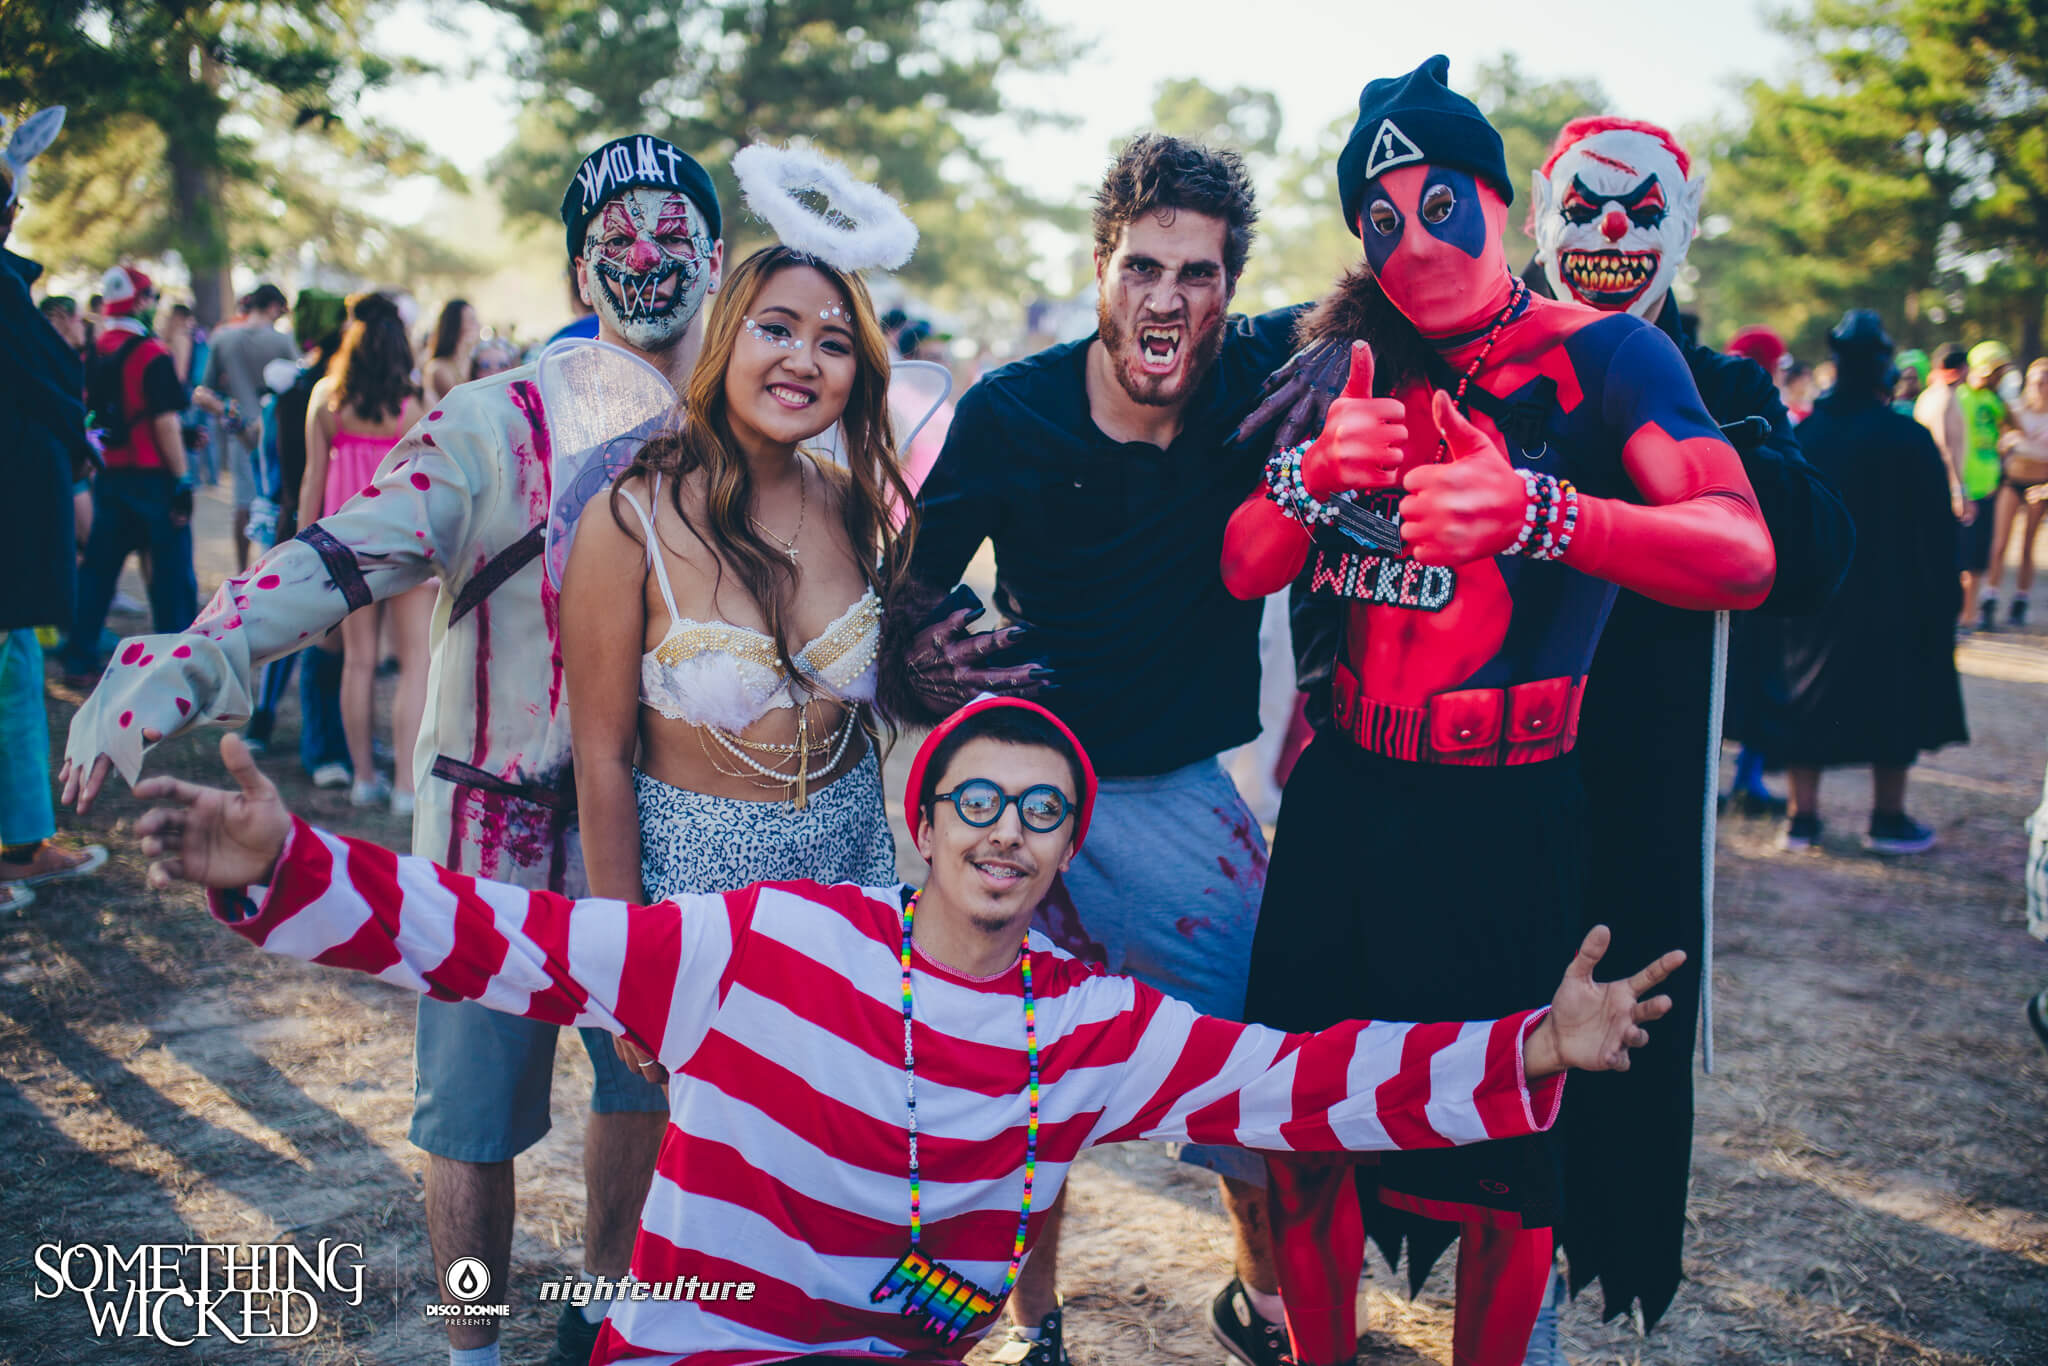 fans in costume at something wicked